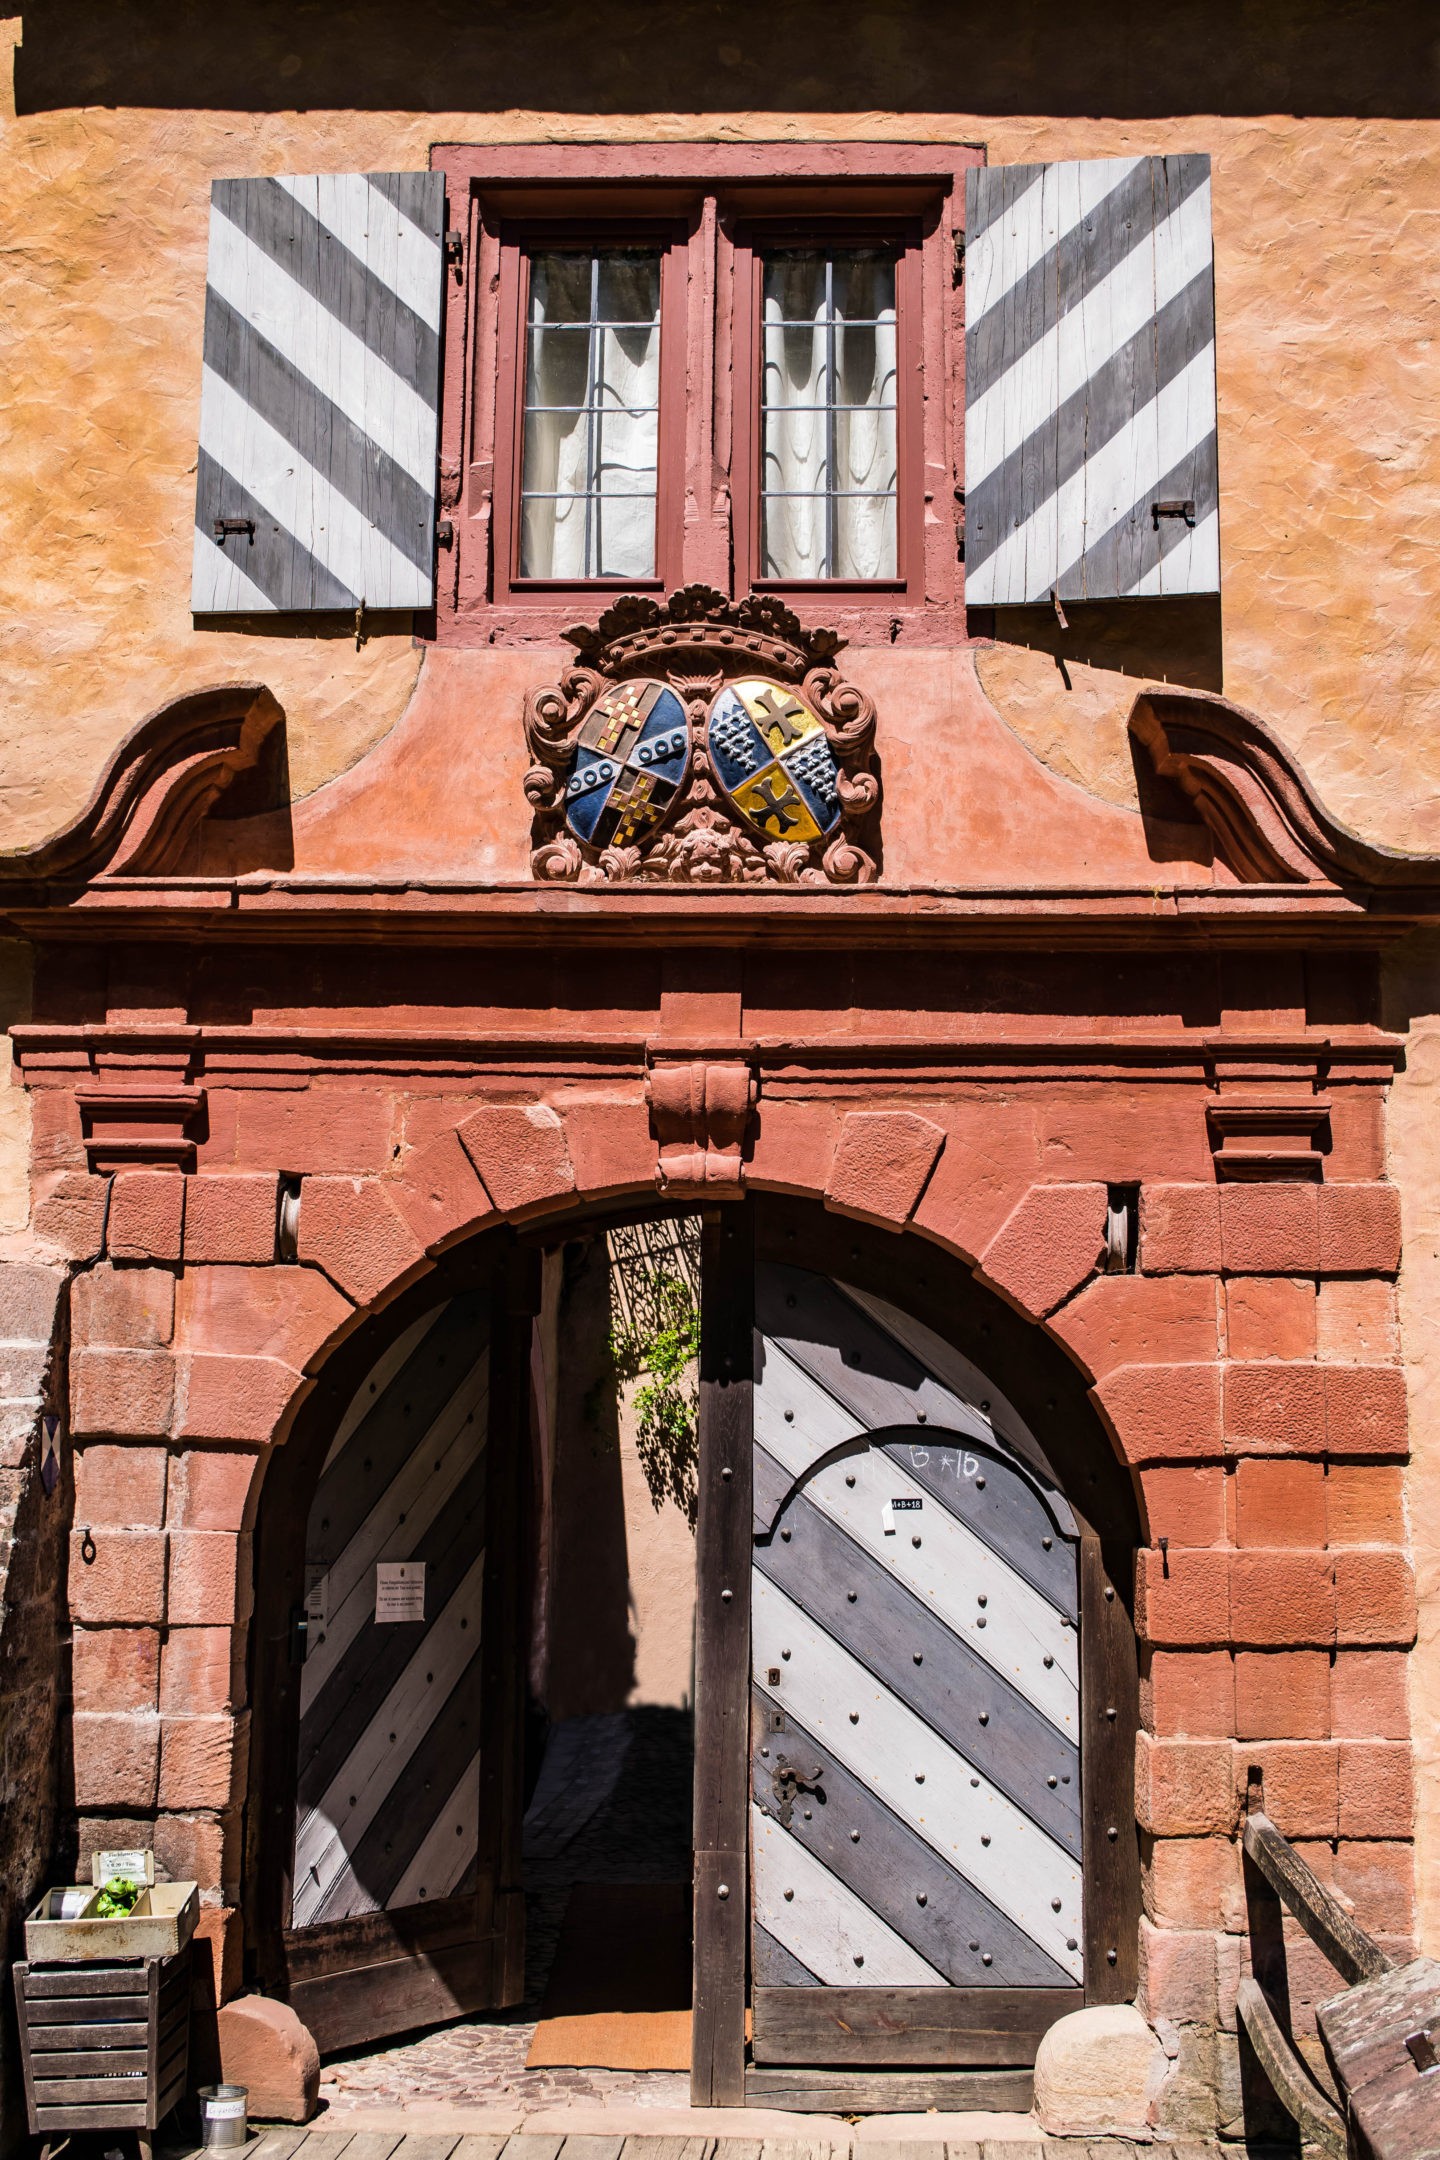 The doors to the Castle Mespelbrunn. You can see the little crate that holds the fish food on the lefthand side there.